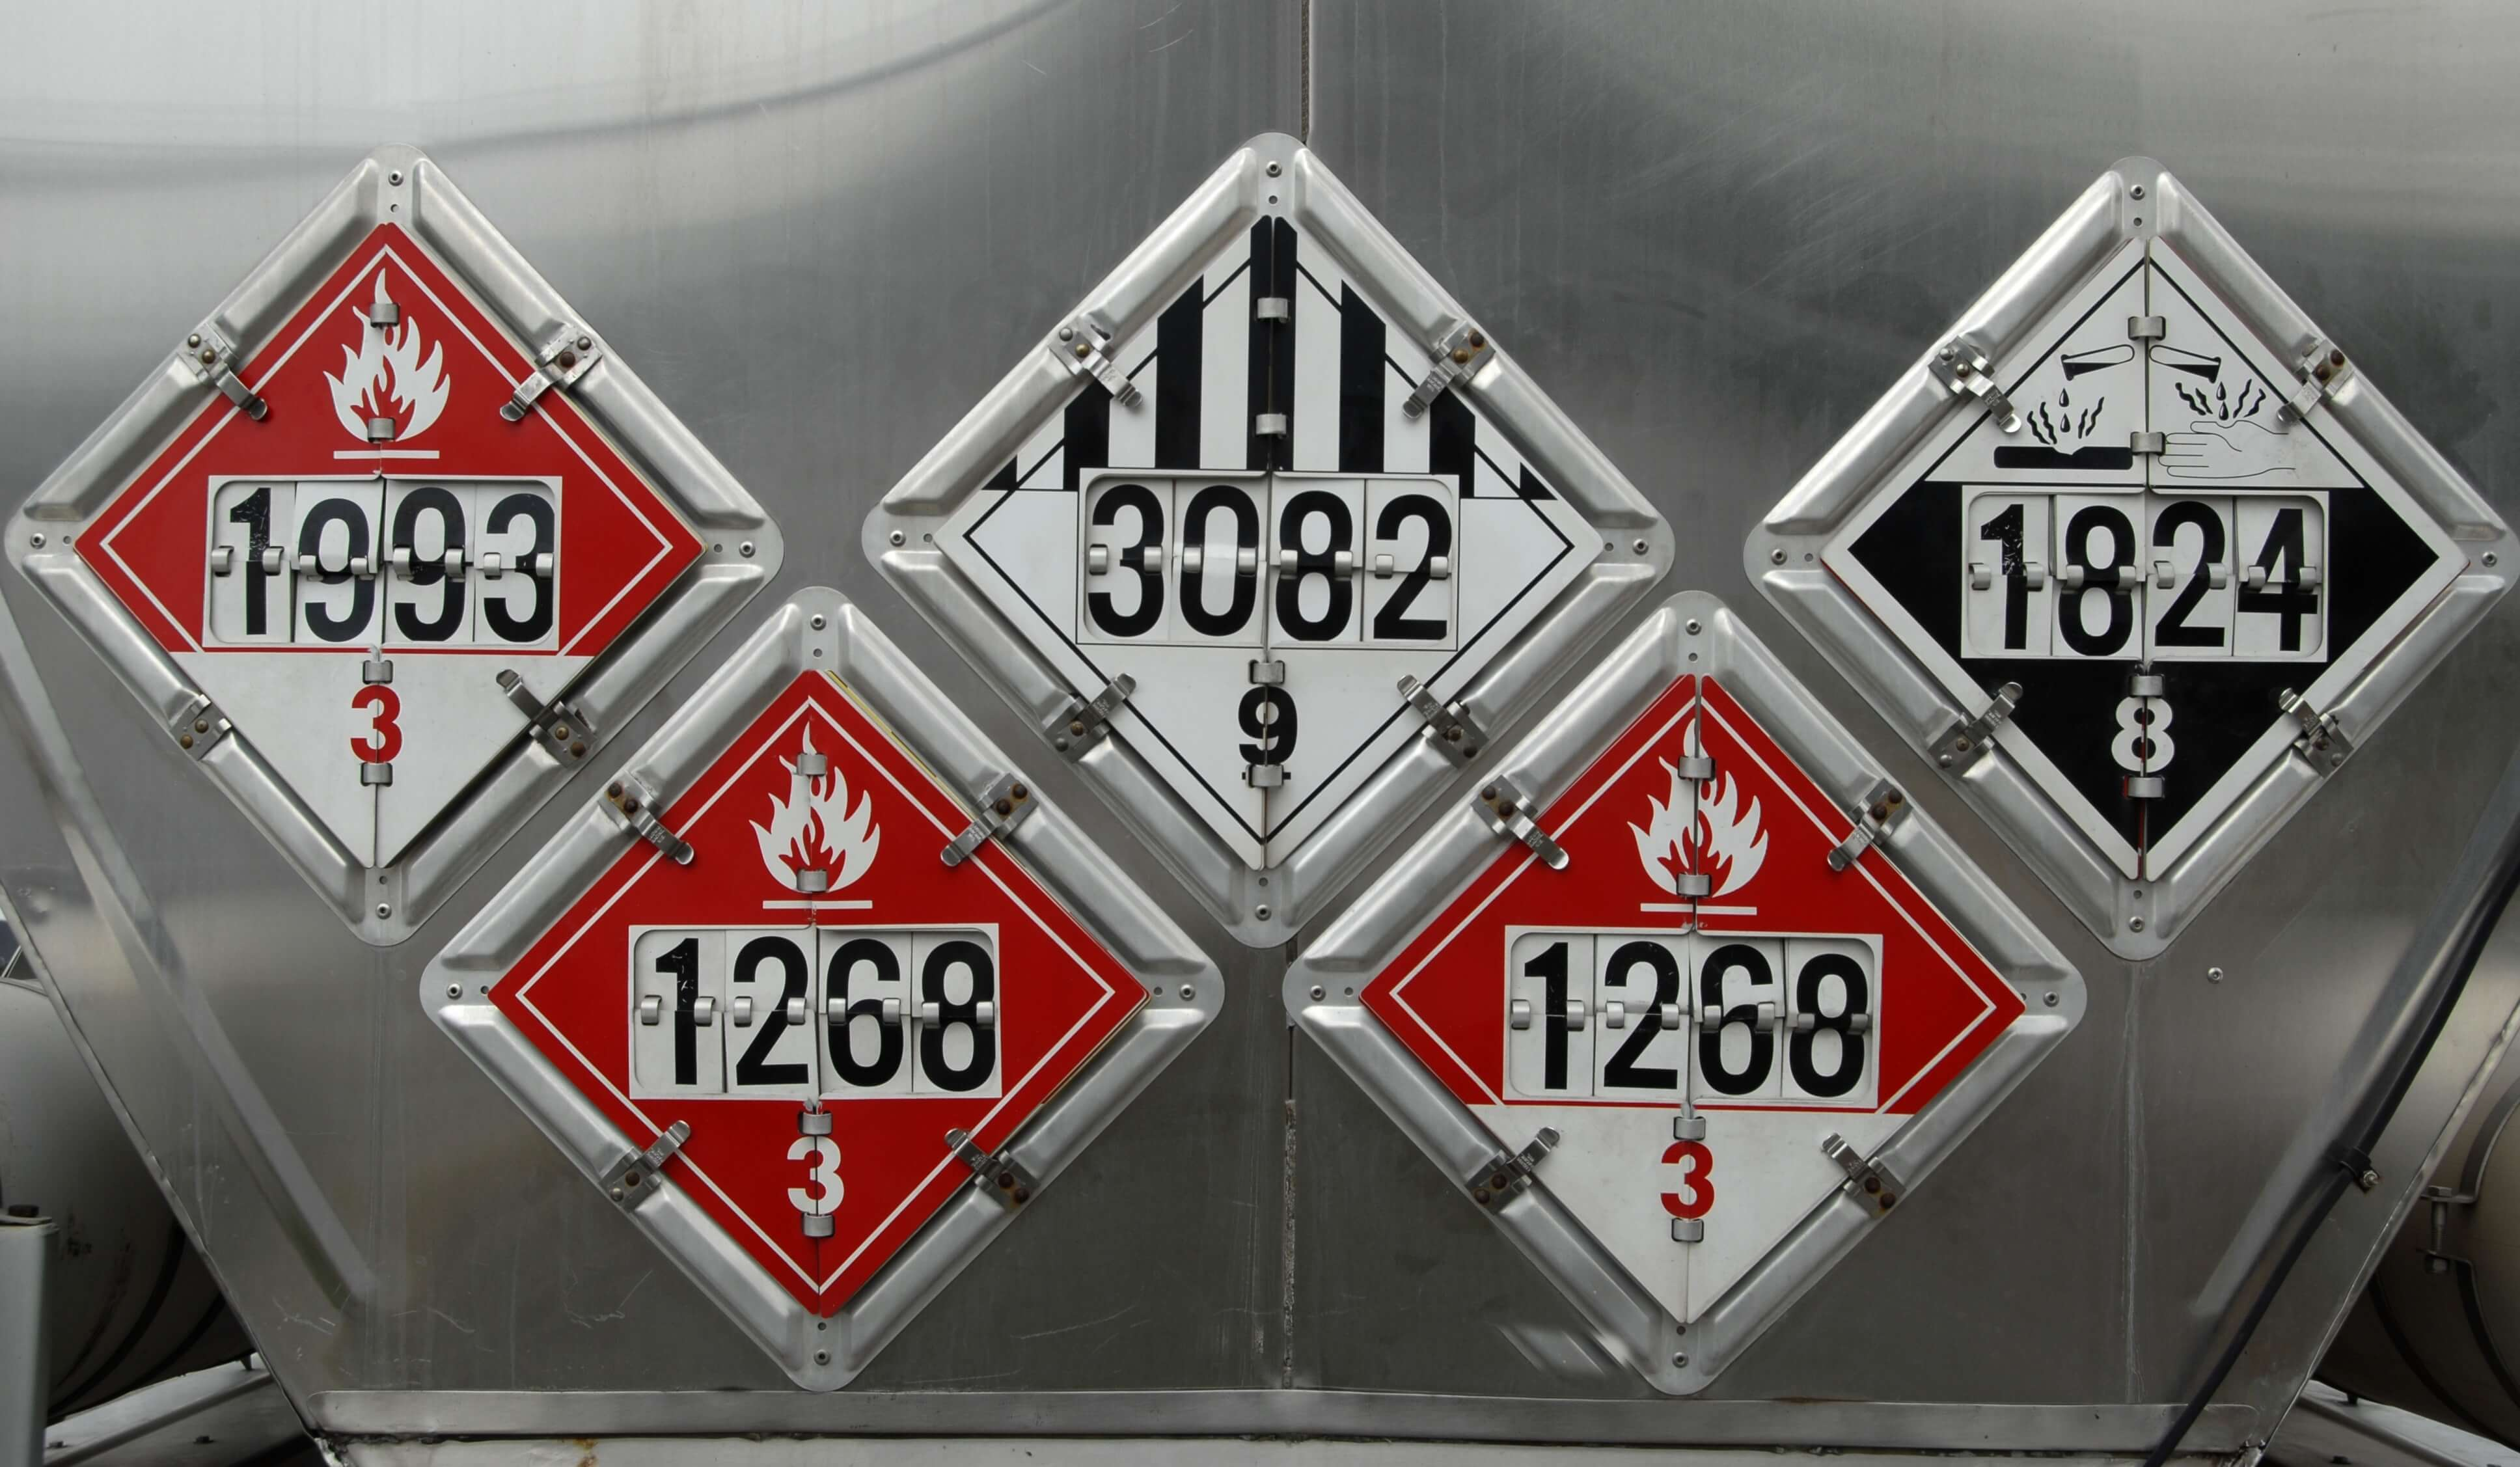 Compatibility Of Class 3 Flammable Liquids With Other Classes Dangerous Goods